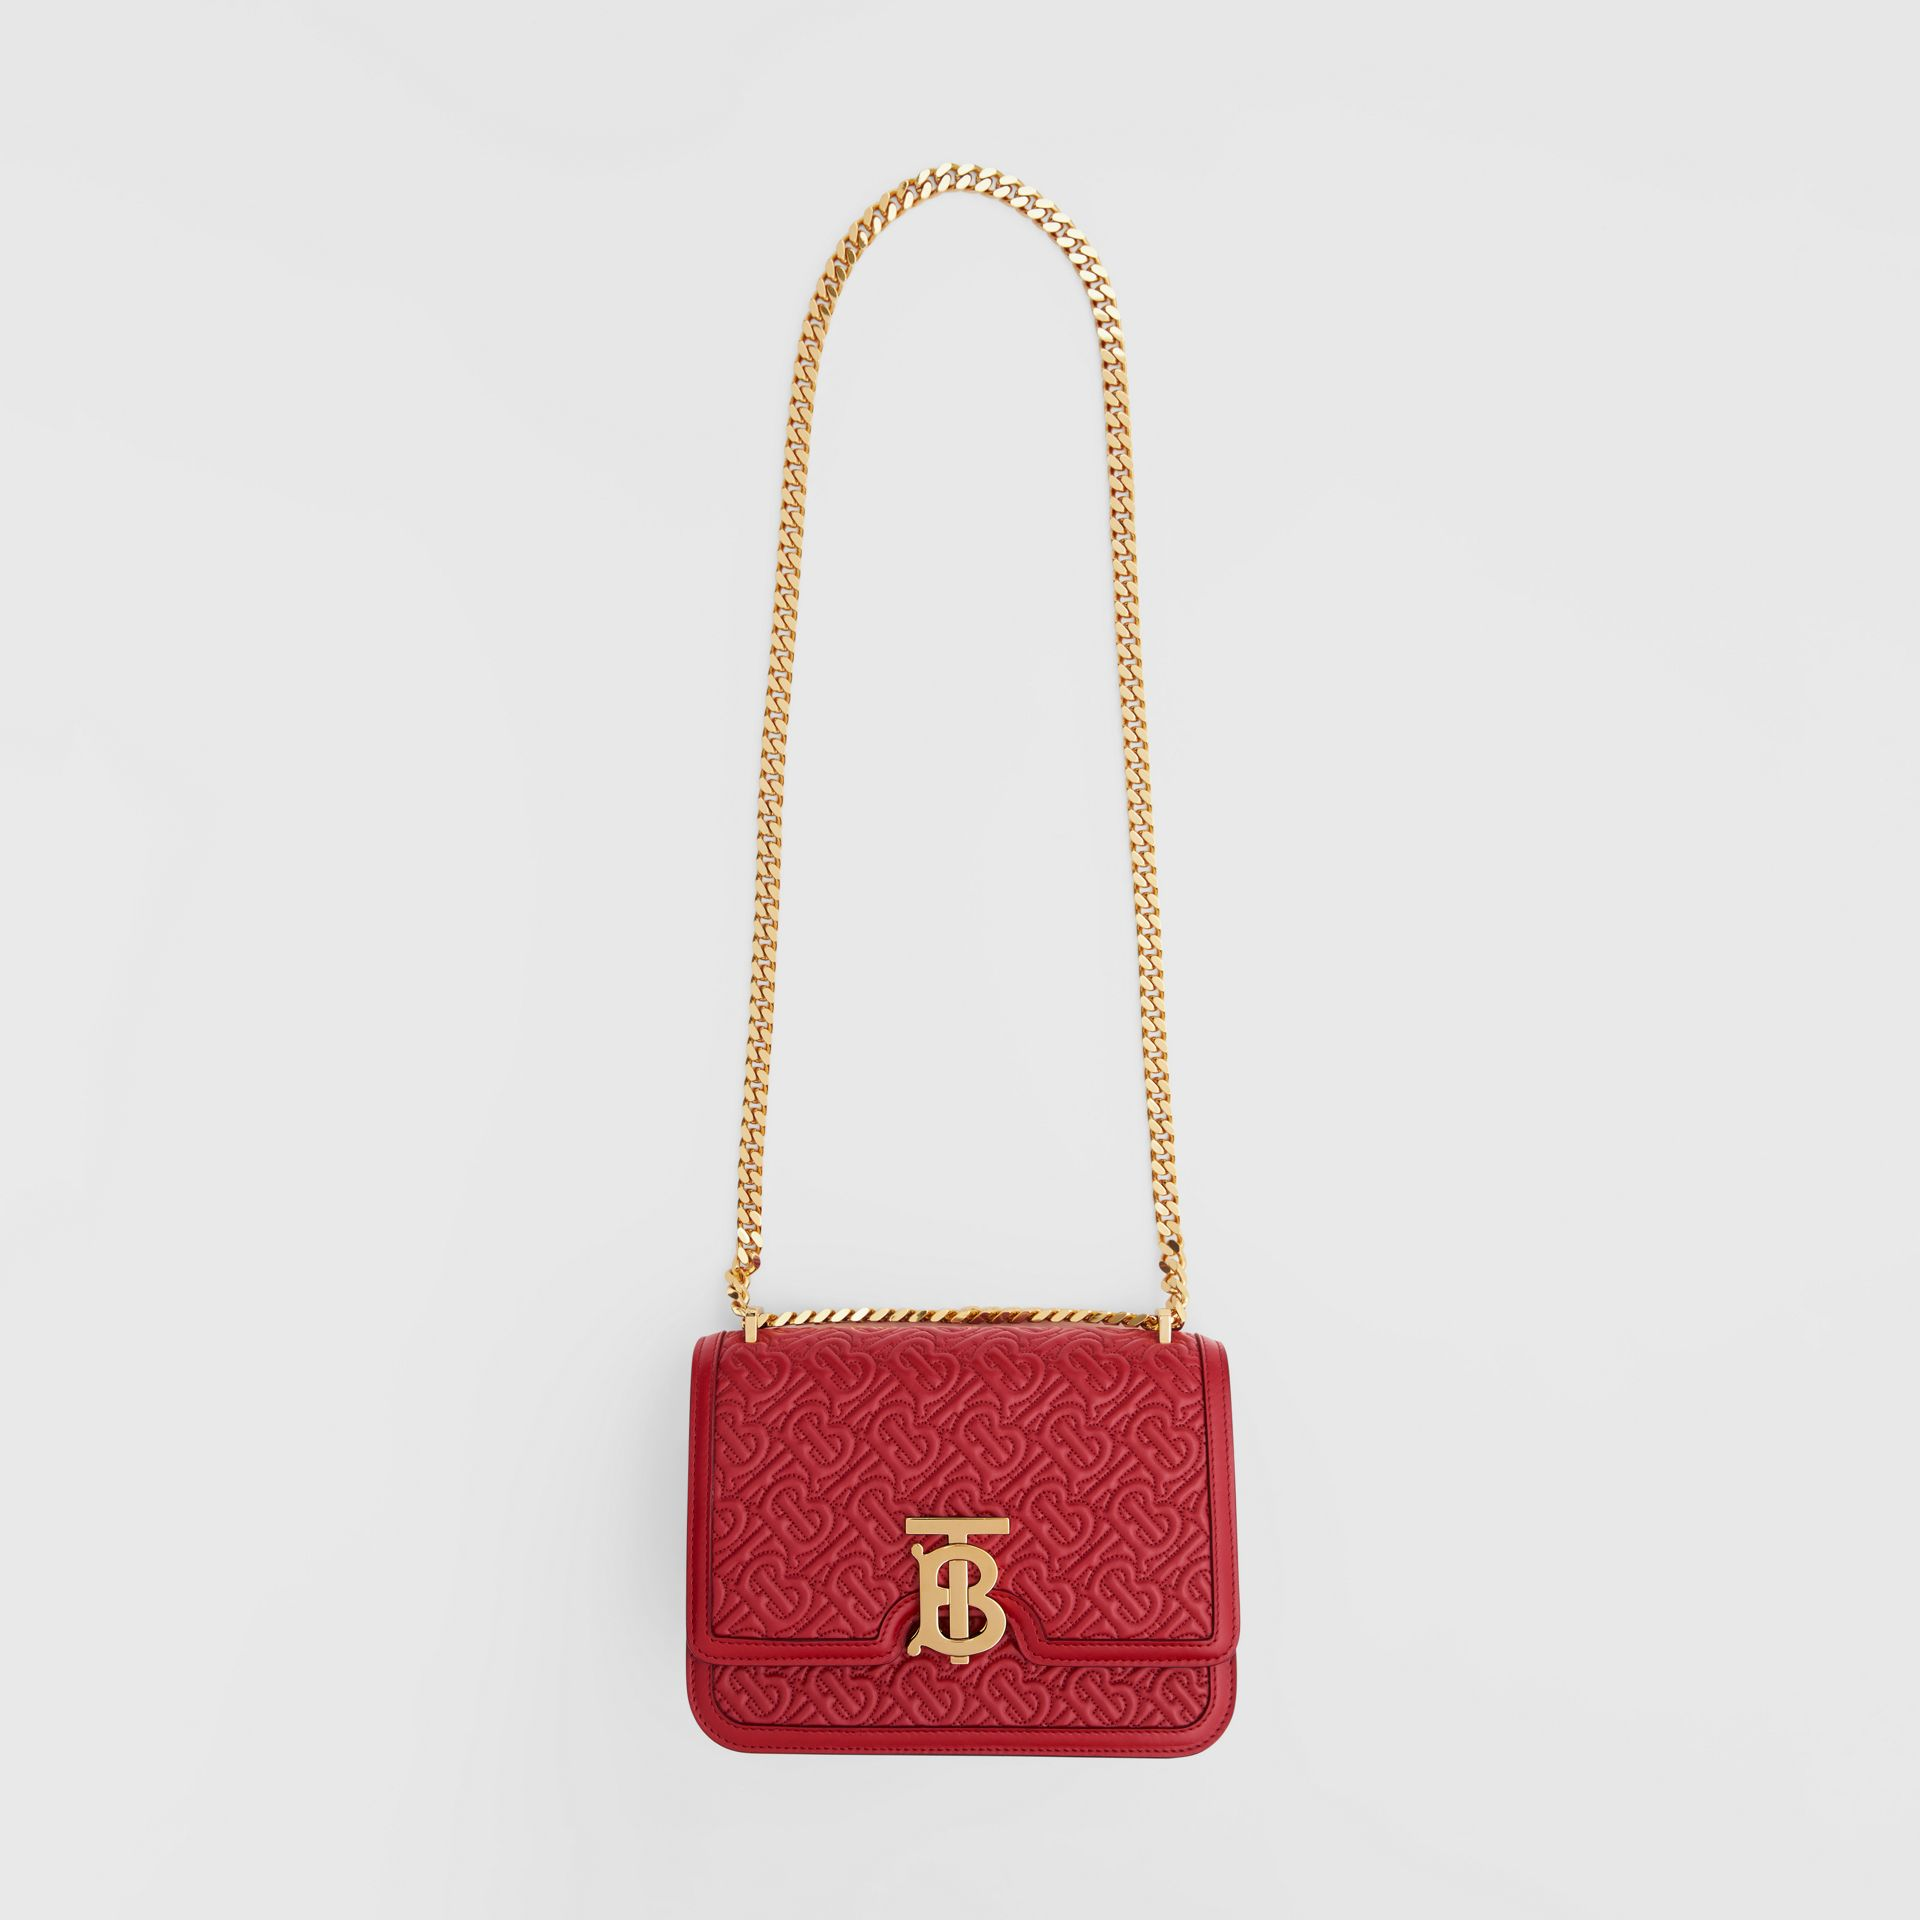 Small Quilted Monogram Lambskin TB Bag in Dark Carmine | Burberry United Kingdom - gallery image 3